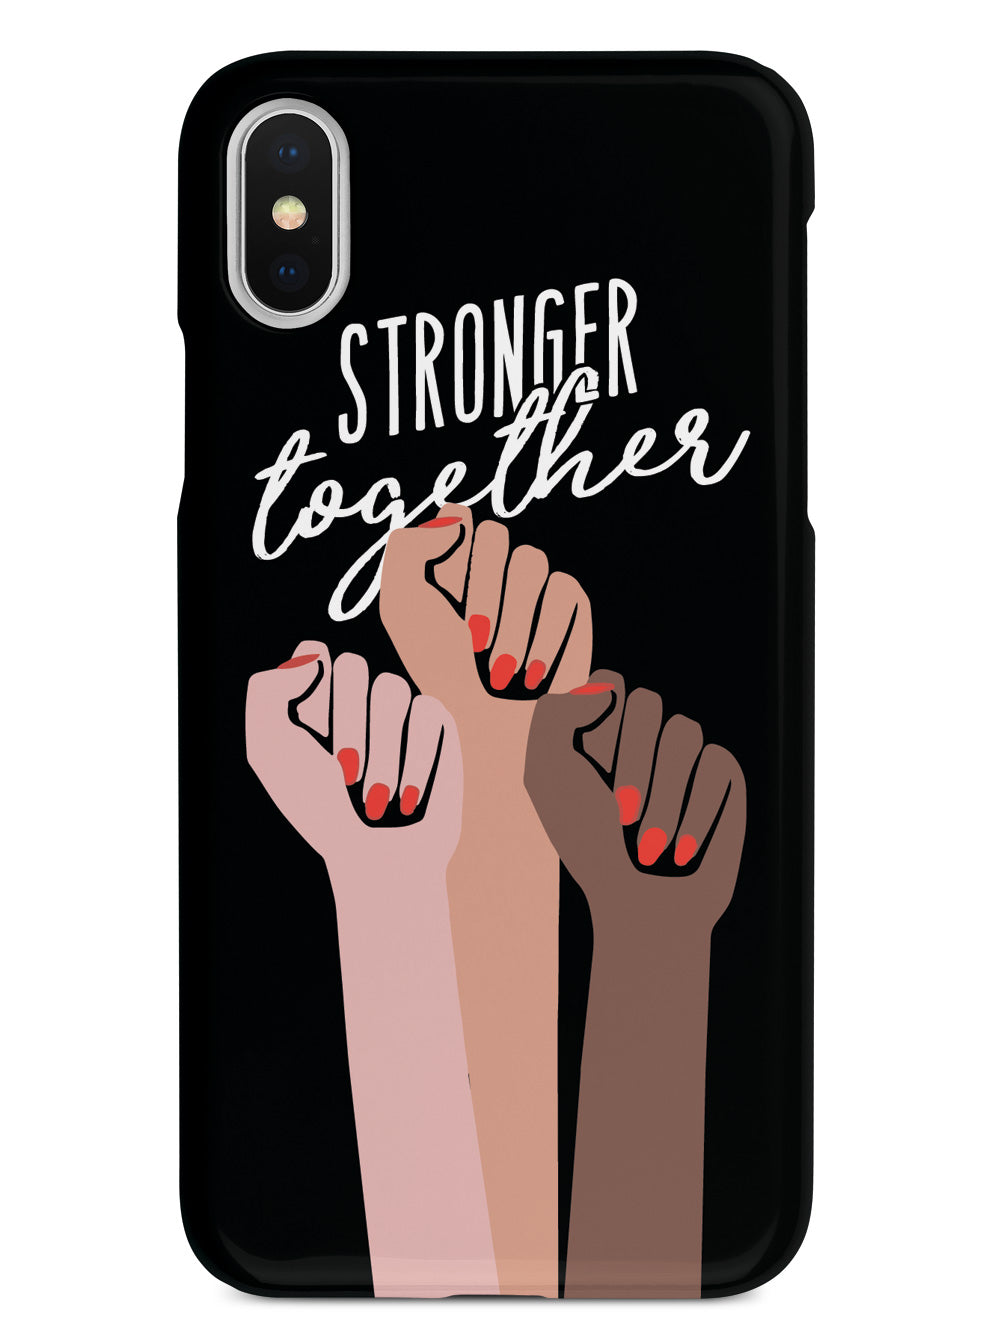 Stronger Together - Women's March Solidarity - Black Case